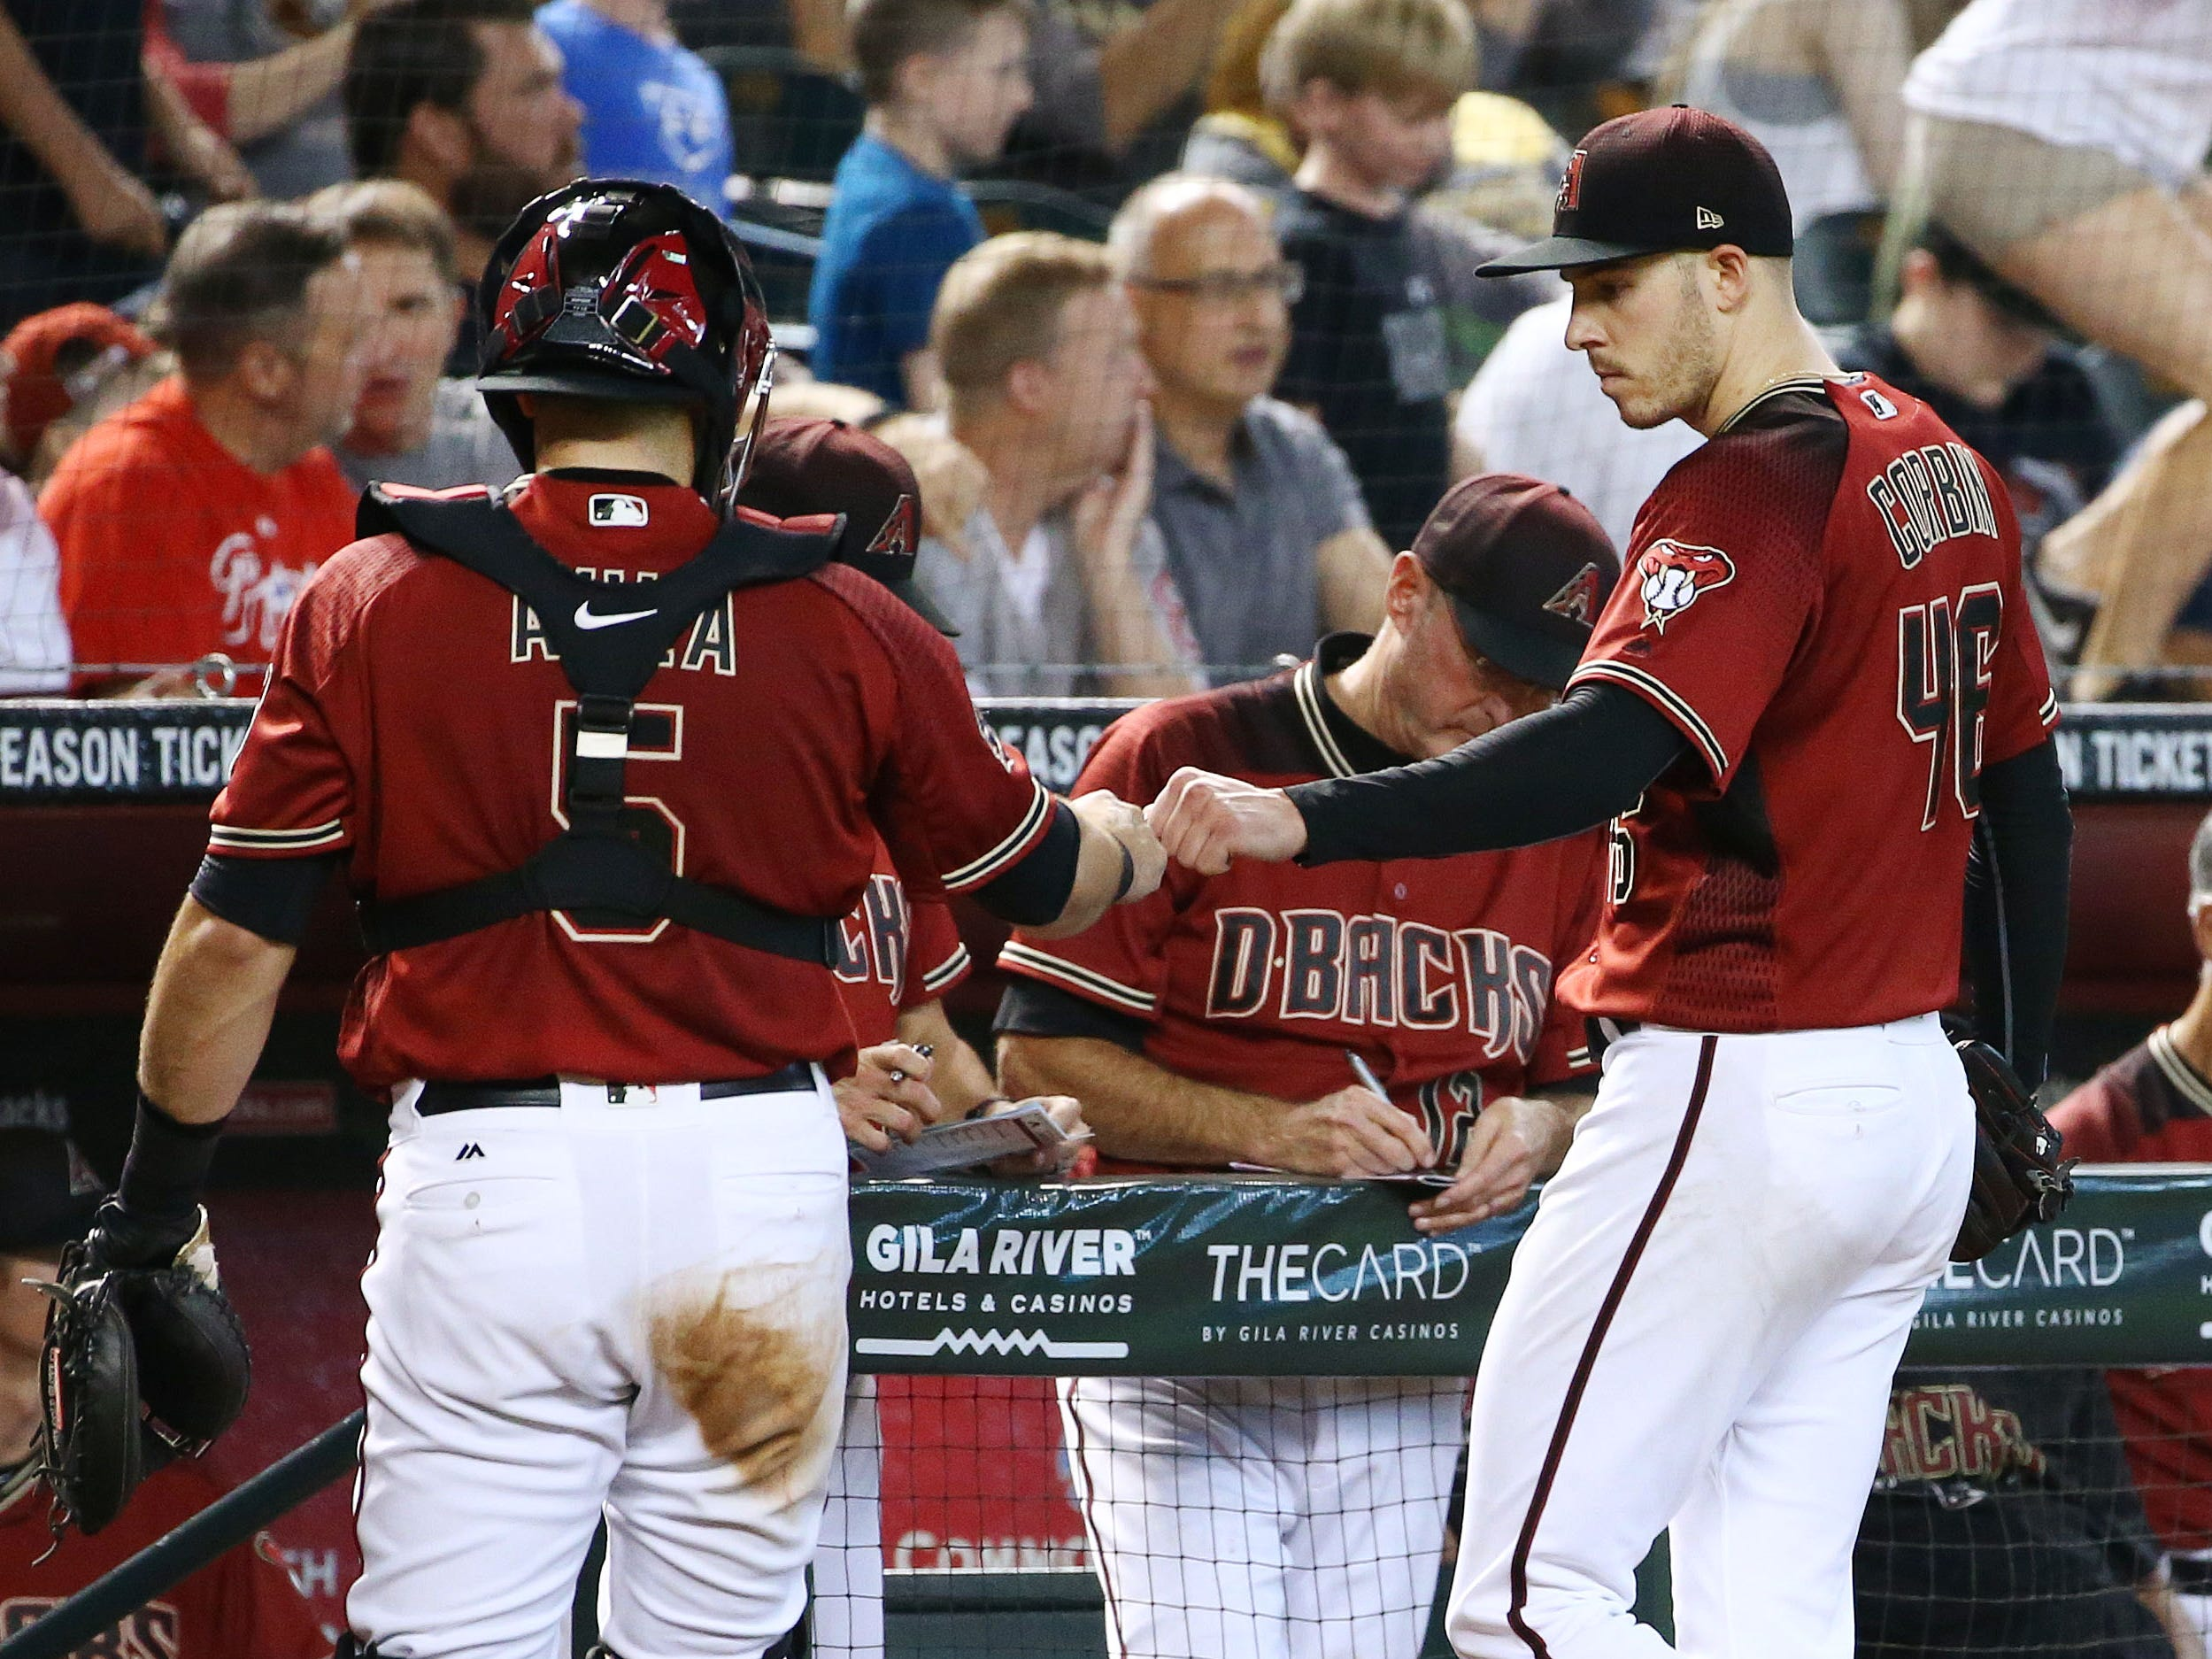 Arizona Diamondbacks Patrick Corbin gives a fist-pump to catcher Alex Avila after holding the Philadelphia Phillies scoreless, on four hits through the seventh inning on Aug. 8, 2018, at Chase Field in Phoenix, Ariz.